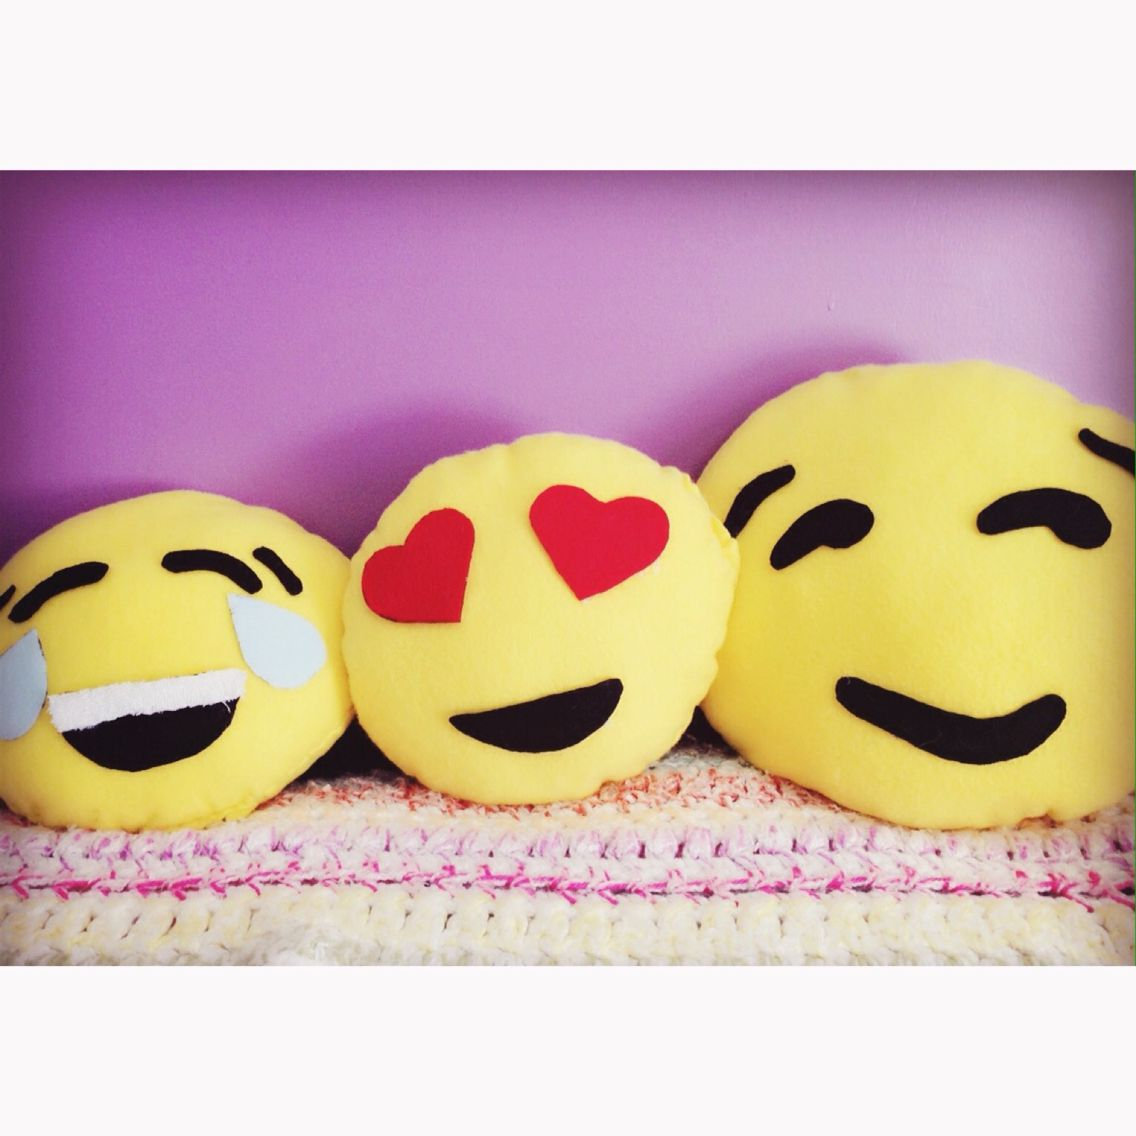 Super Adorable Diy Emoji Pillows Super Cute And Super Easy Only Requiring A Few Materials Emoji Pillows Crafts For Teens Sewing For Kids